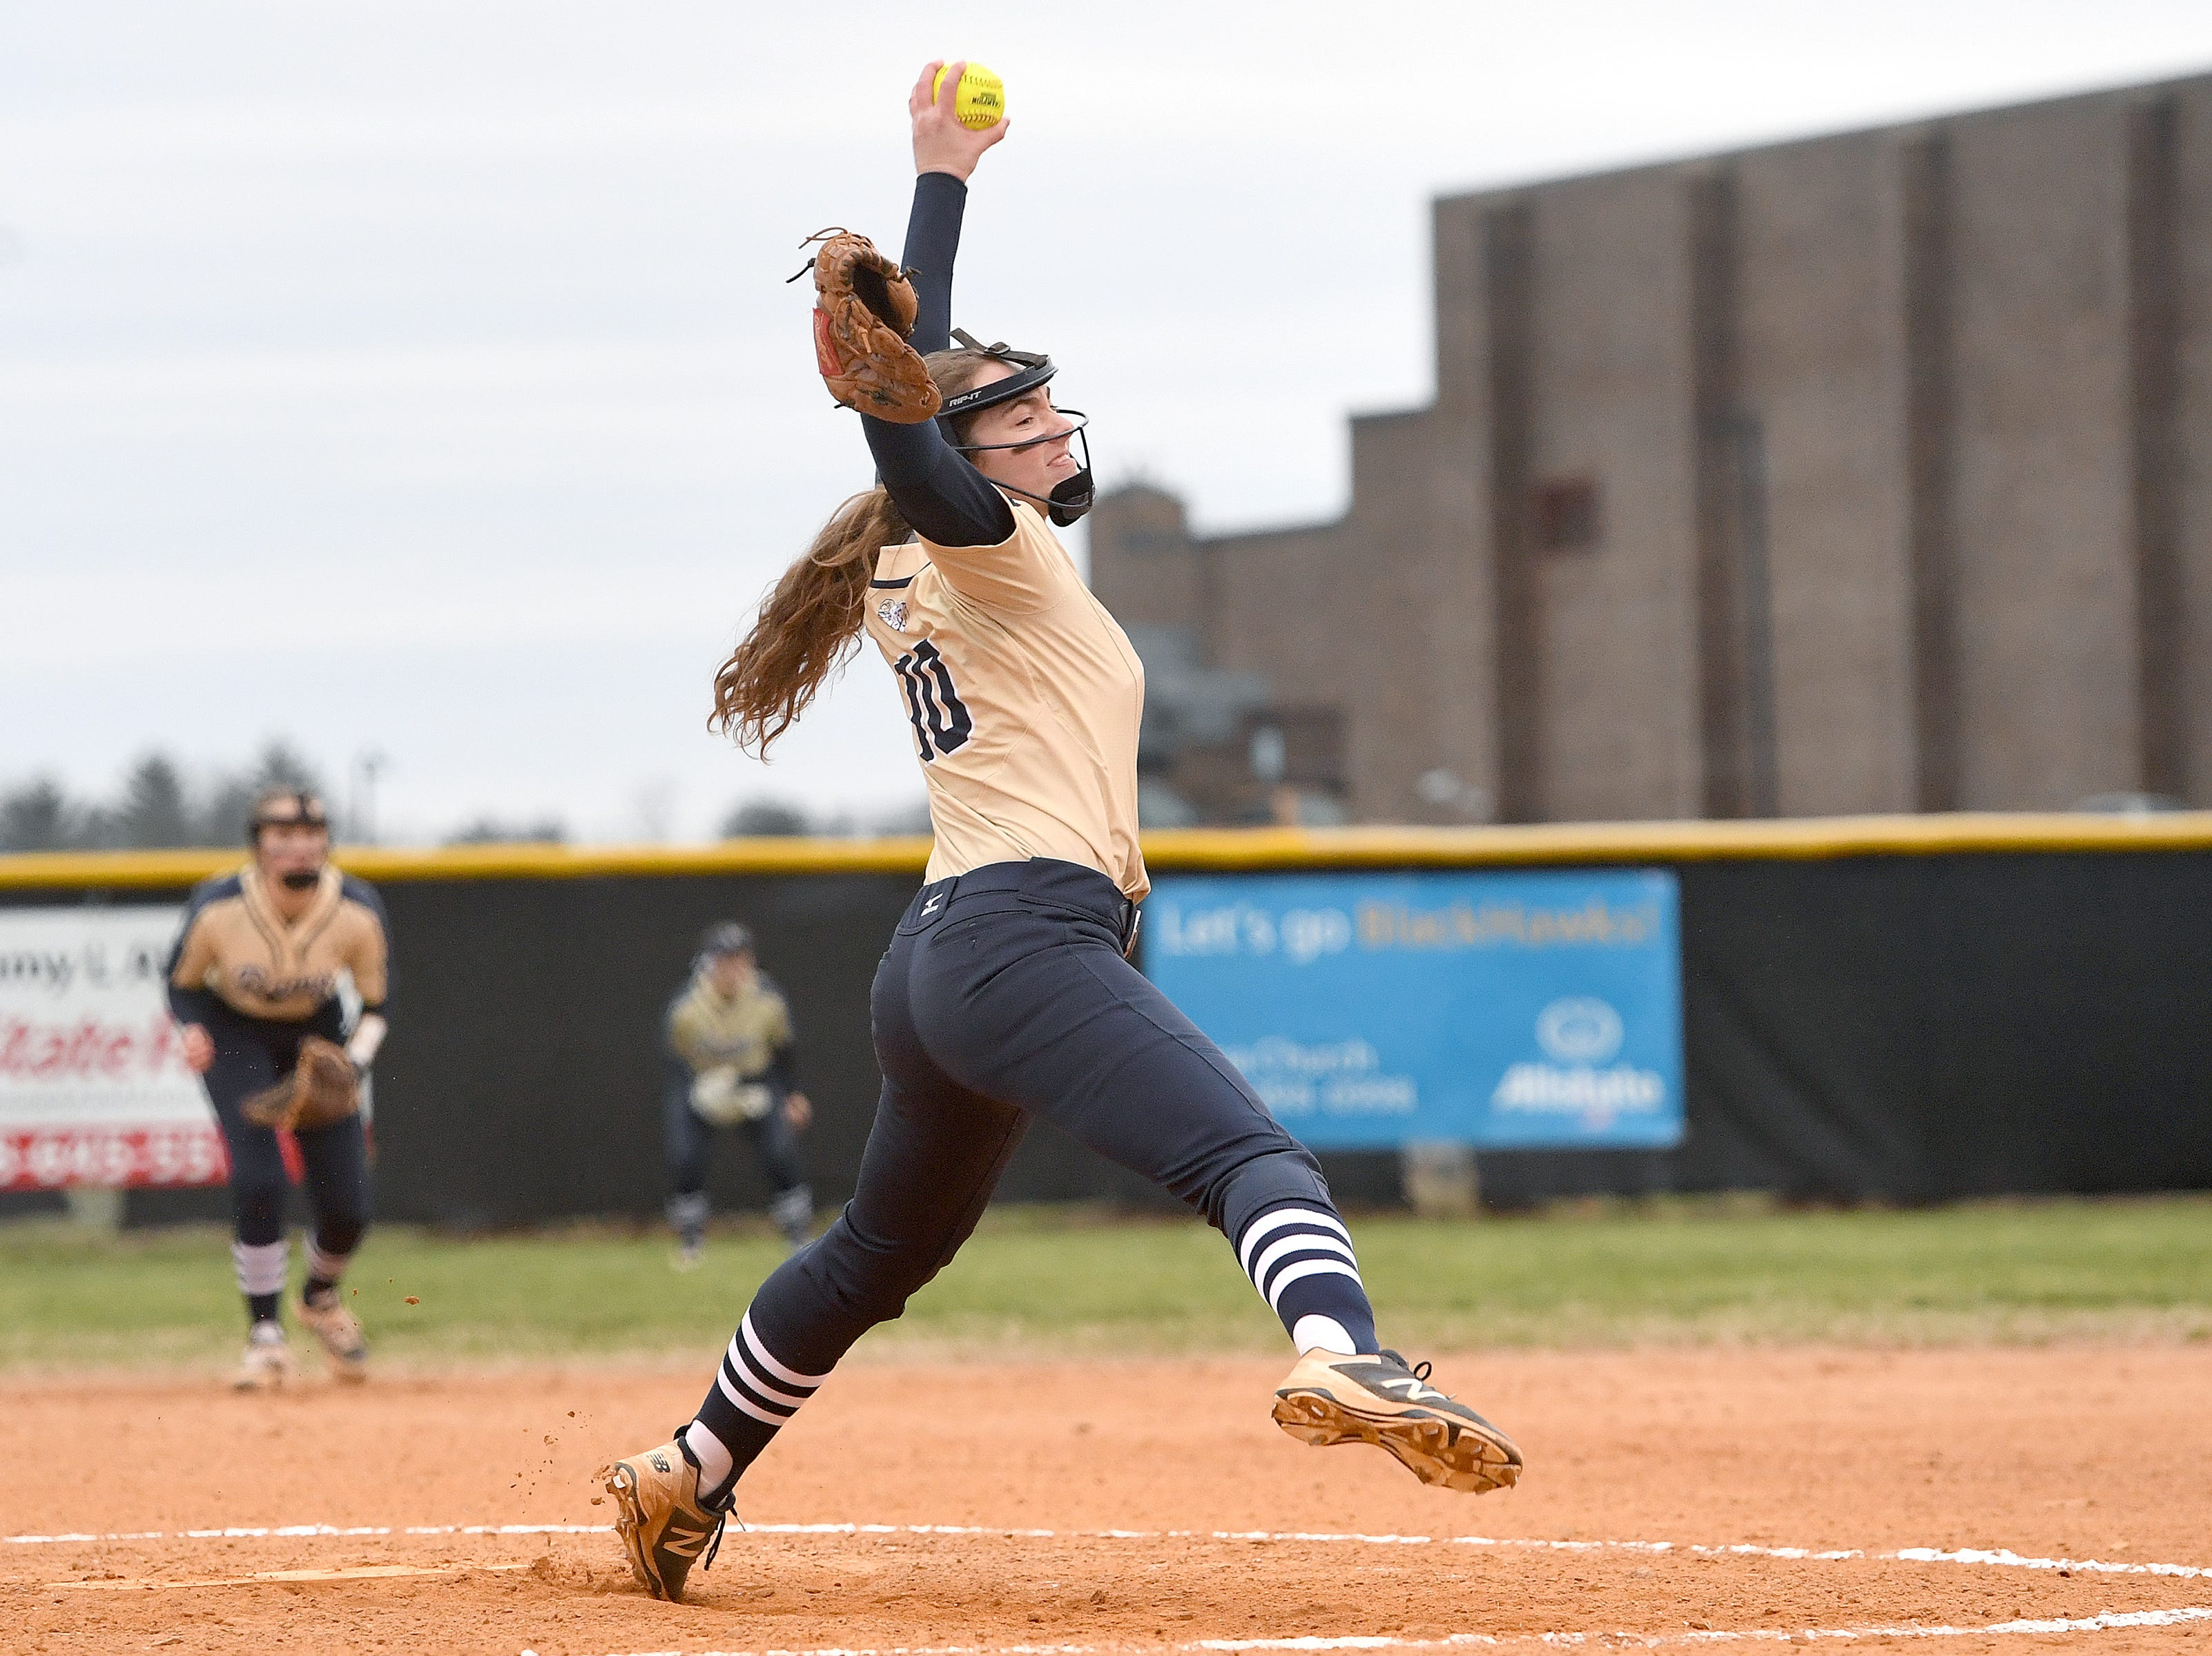 Roberson pitcher Amala Clawson delivers a pitch to a North Buncombe batter during their game at North Buncombe High School on March 7, 2019. North Buncombe defeated Roberson 3-1.